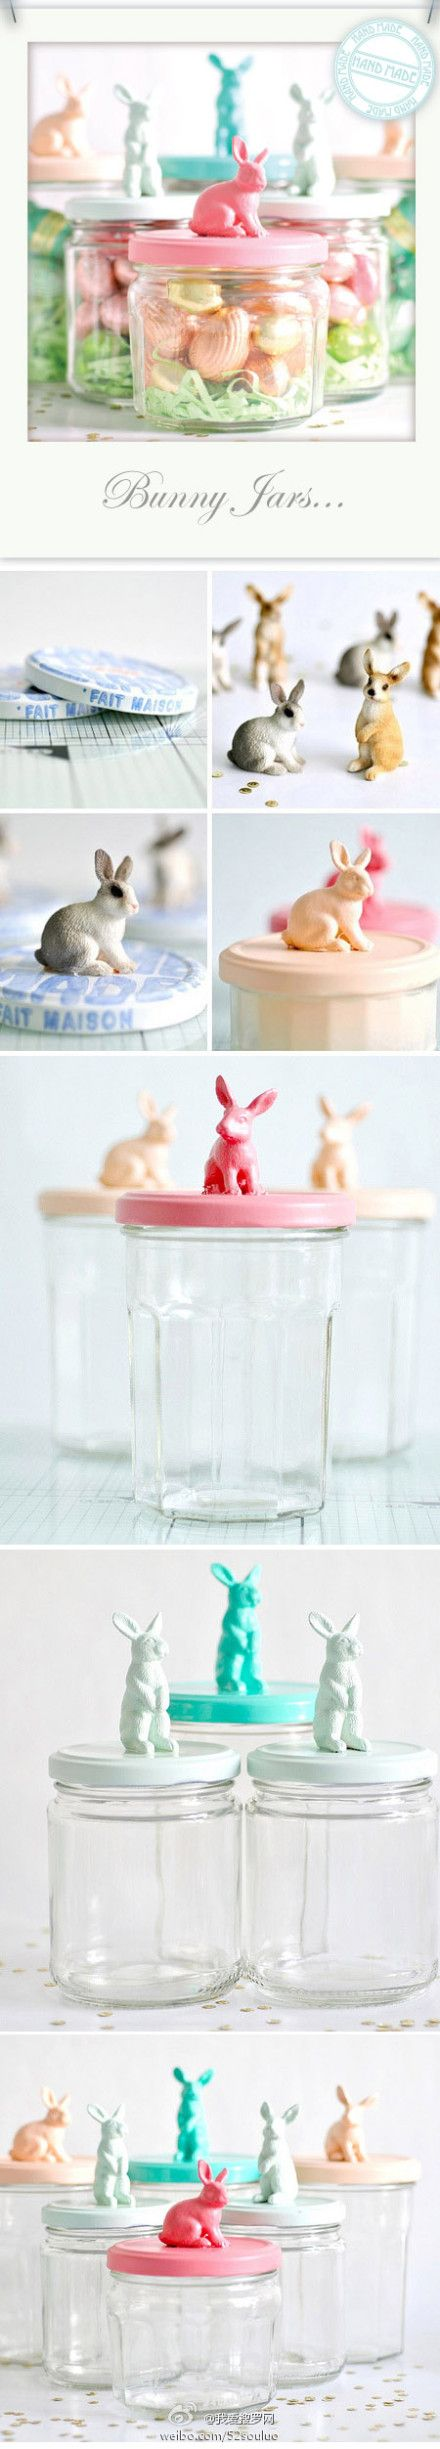 Glue a cheap figurine onto jar top; let dry; spray lid & figurine. Possiblilities are endless!